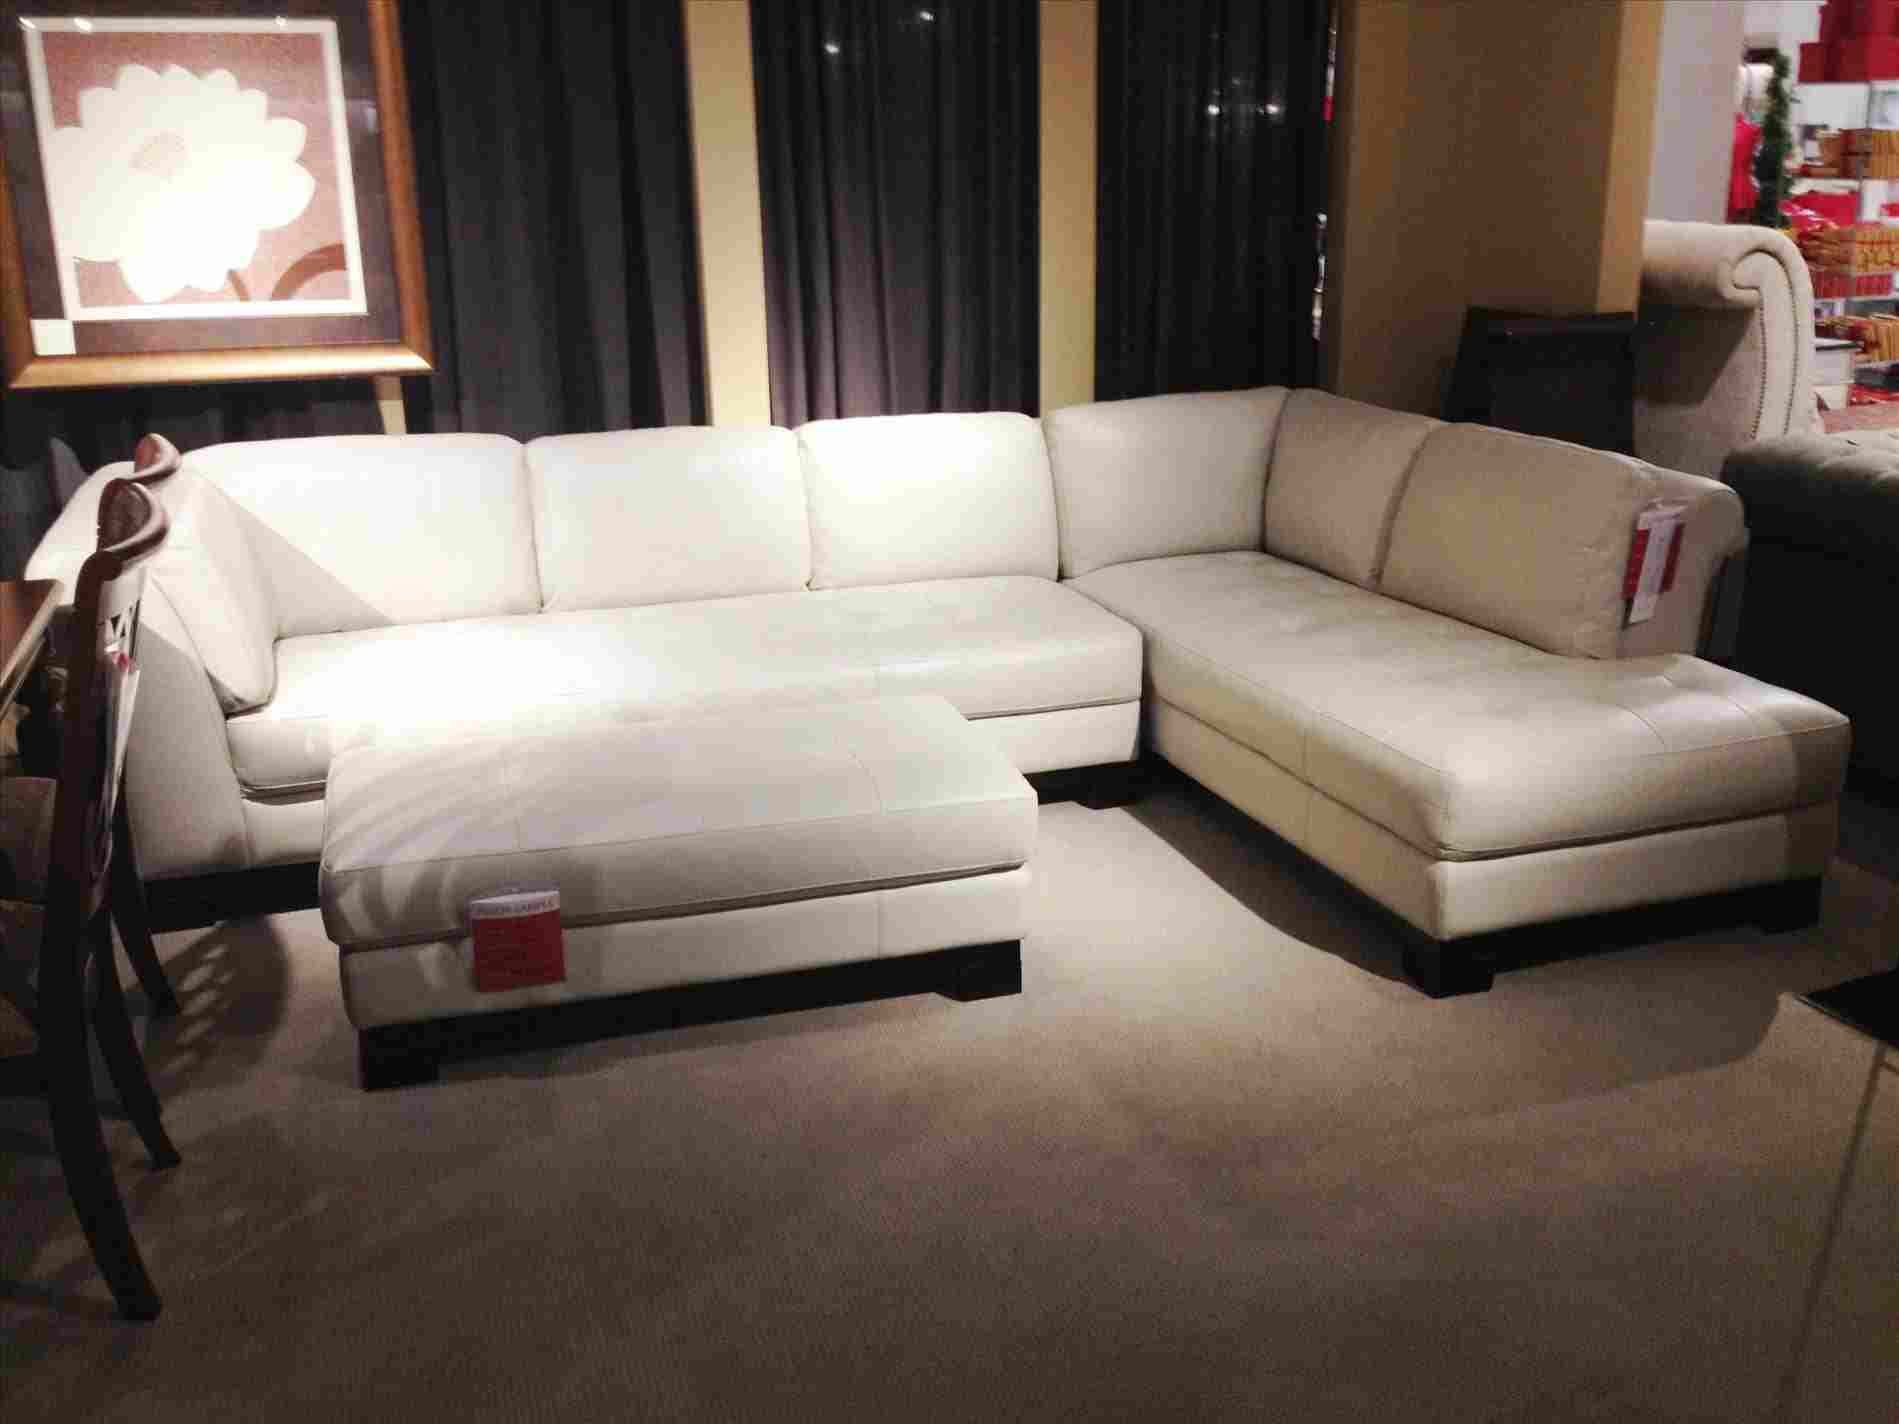 Down Filled Sectional Sofa Macy S With Images Sectional Sofa Leather Sectional Sofas Leather Sectional Sofa